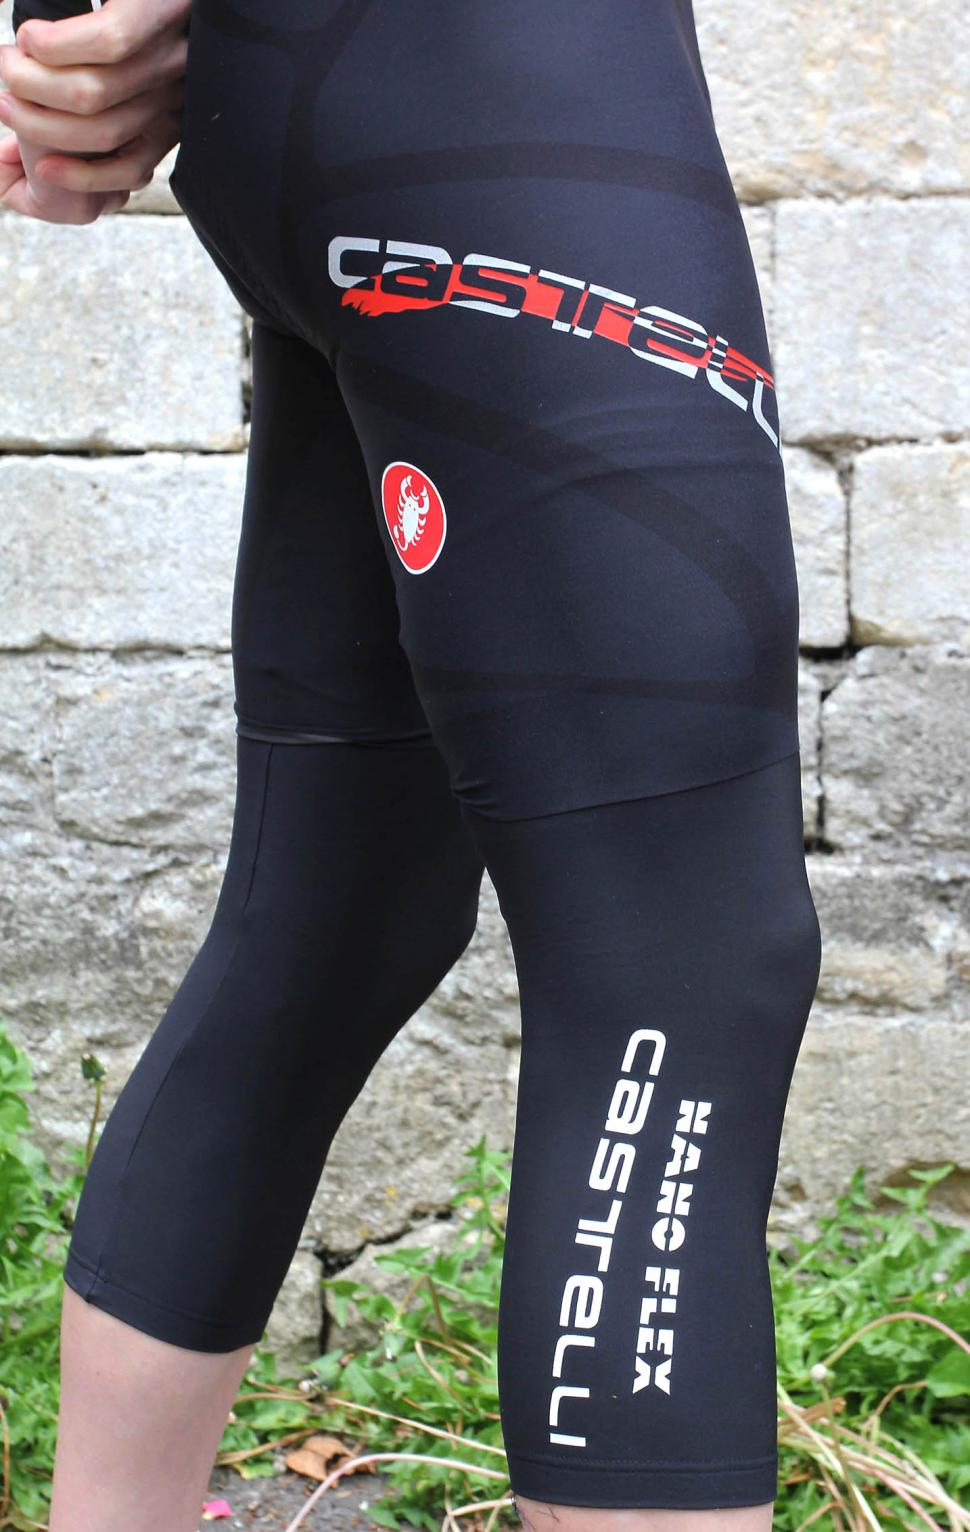 Castelli Nano Flex knee warmer